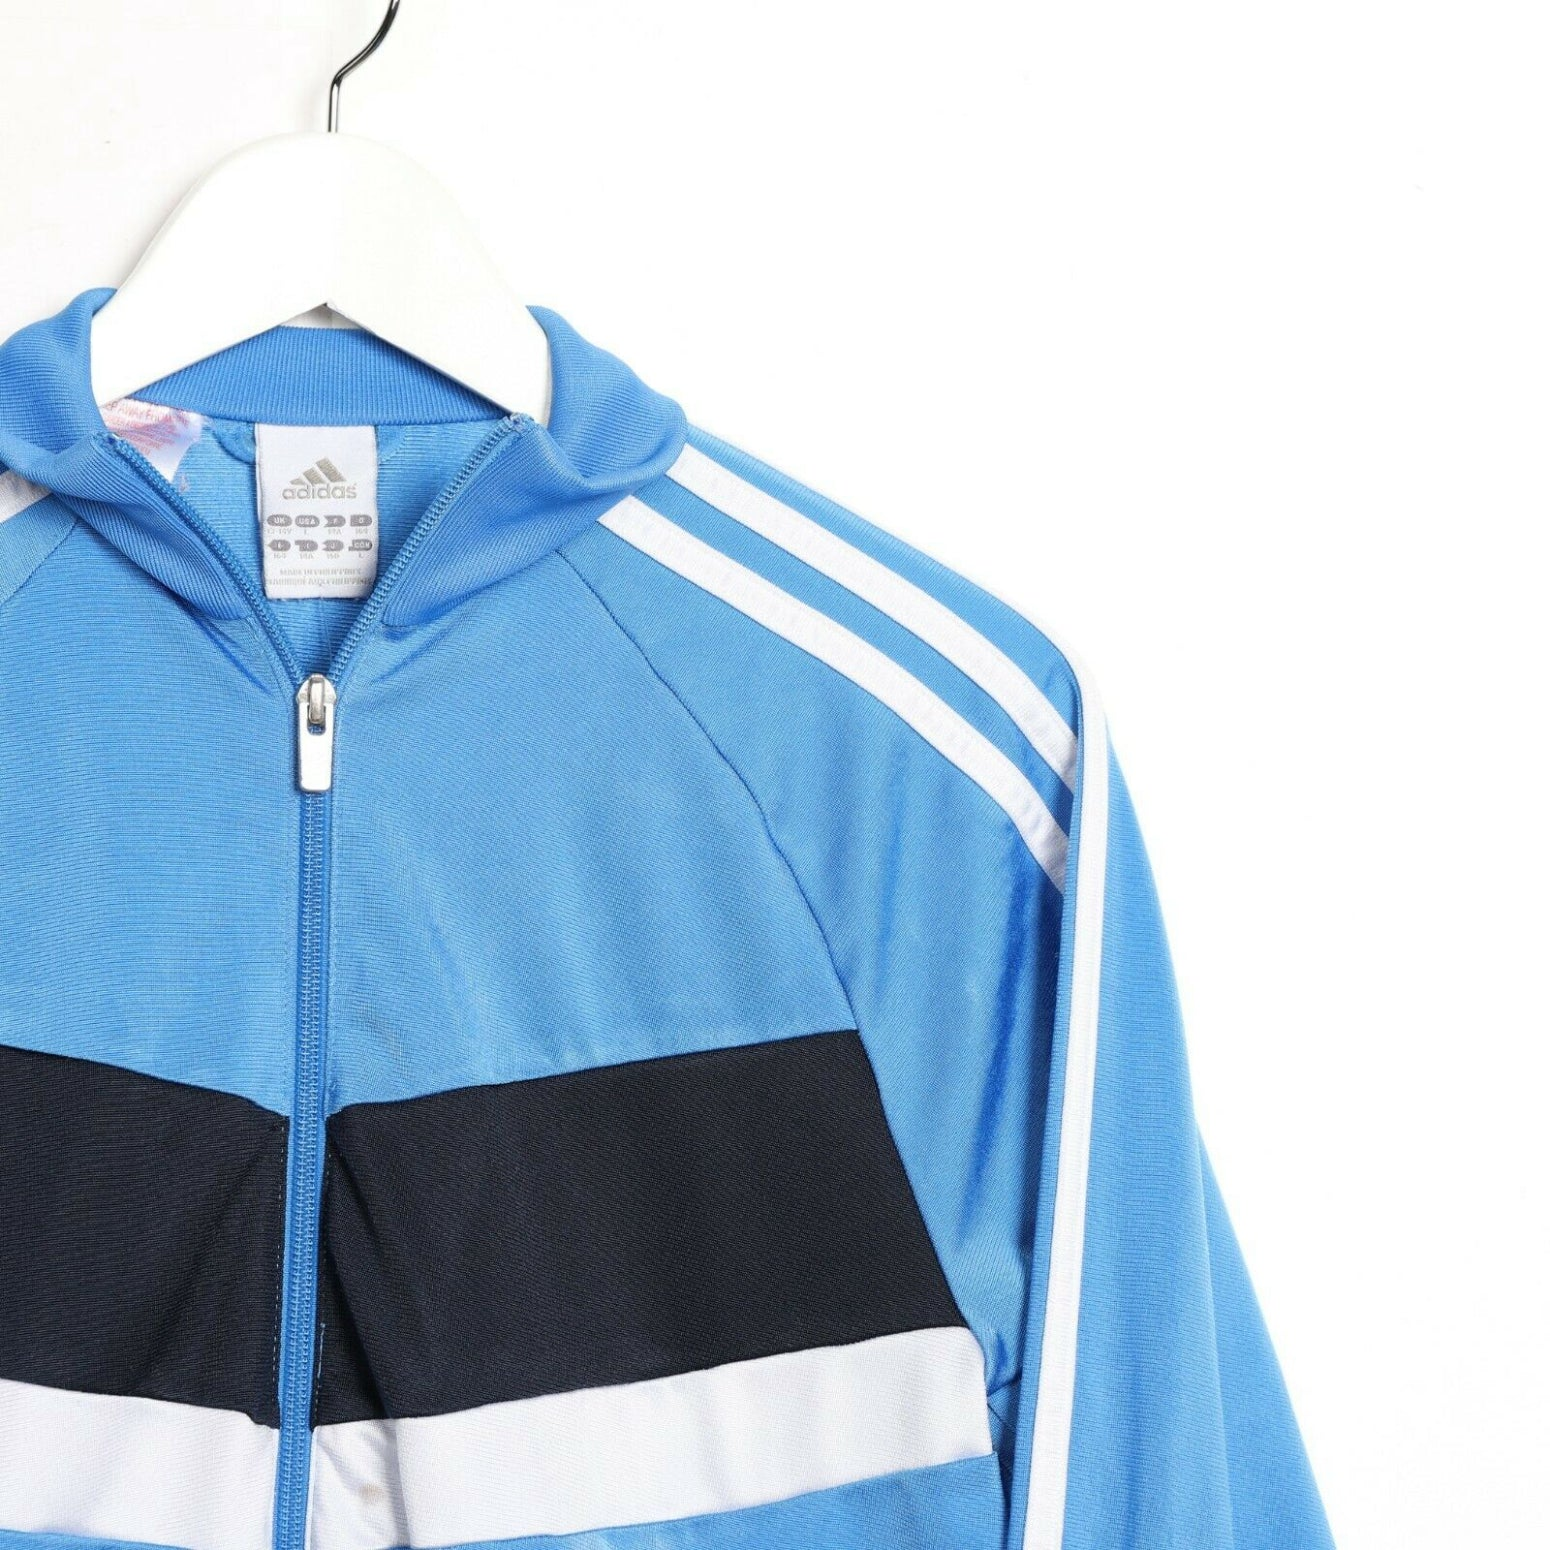 Vintage Women's ADIDAS Small Logo Zip Up Track Top Jacket Blue small s